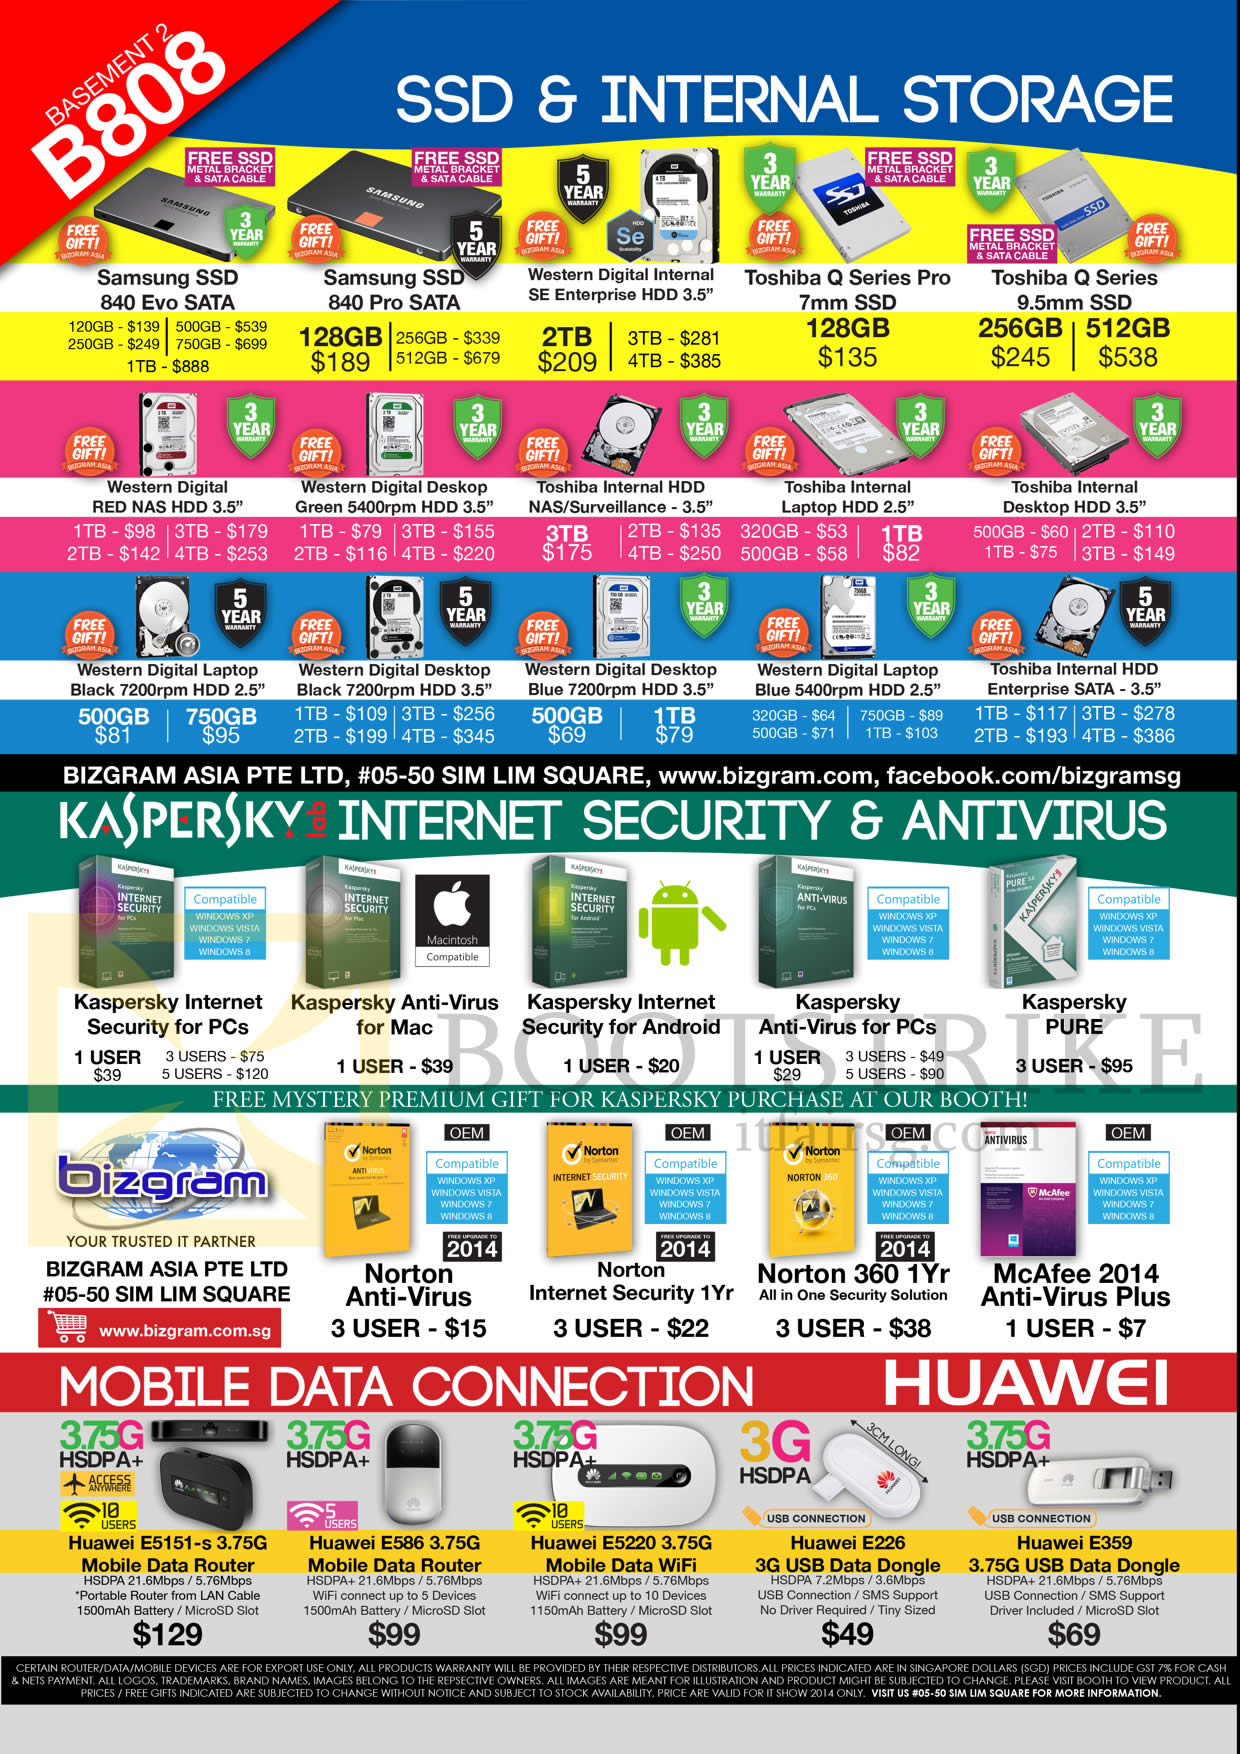 Internet Logos And Names List It show 2014 price list image